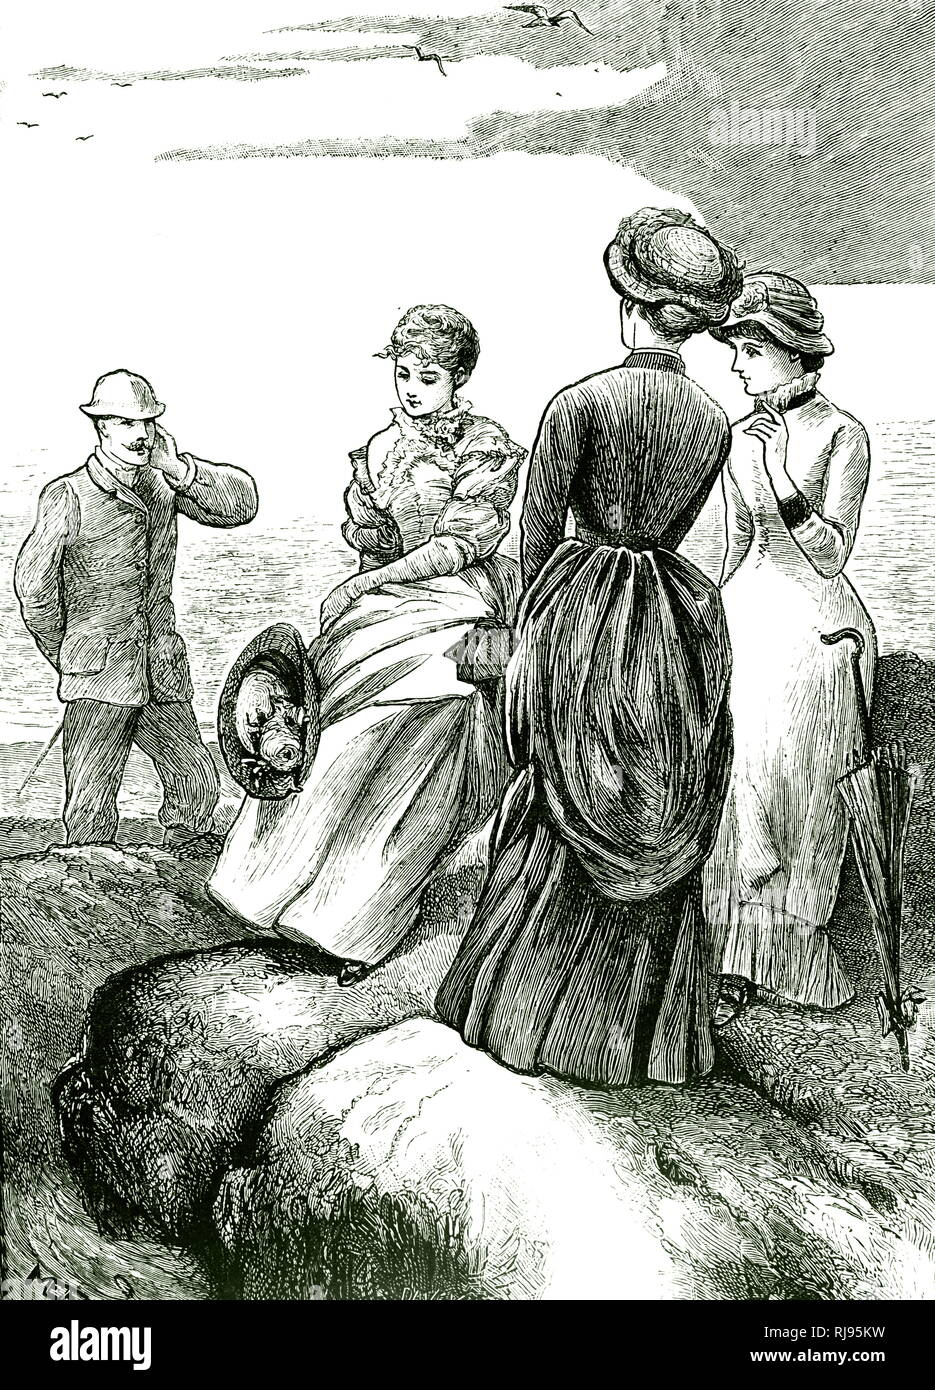 An engraving depicting a day at the seaside. Illustrated by Mary Ellen Edwards (1838-1934) an English artist and illustrator of children's books. Dated 19th century - Stock Image